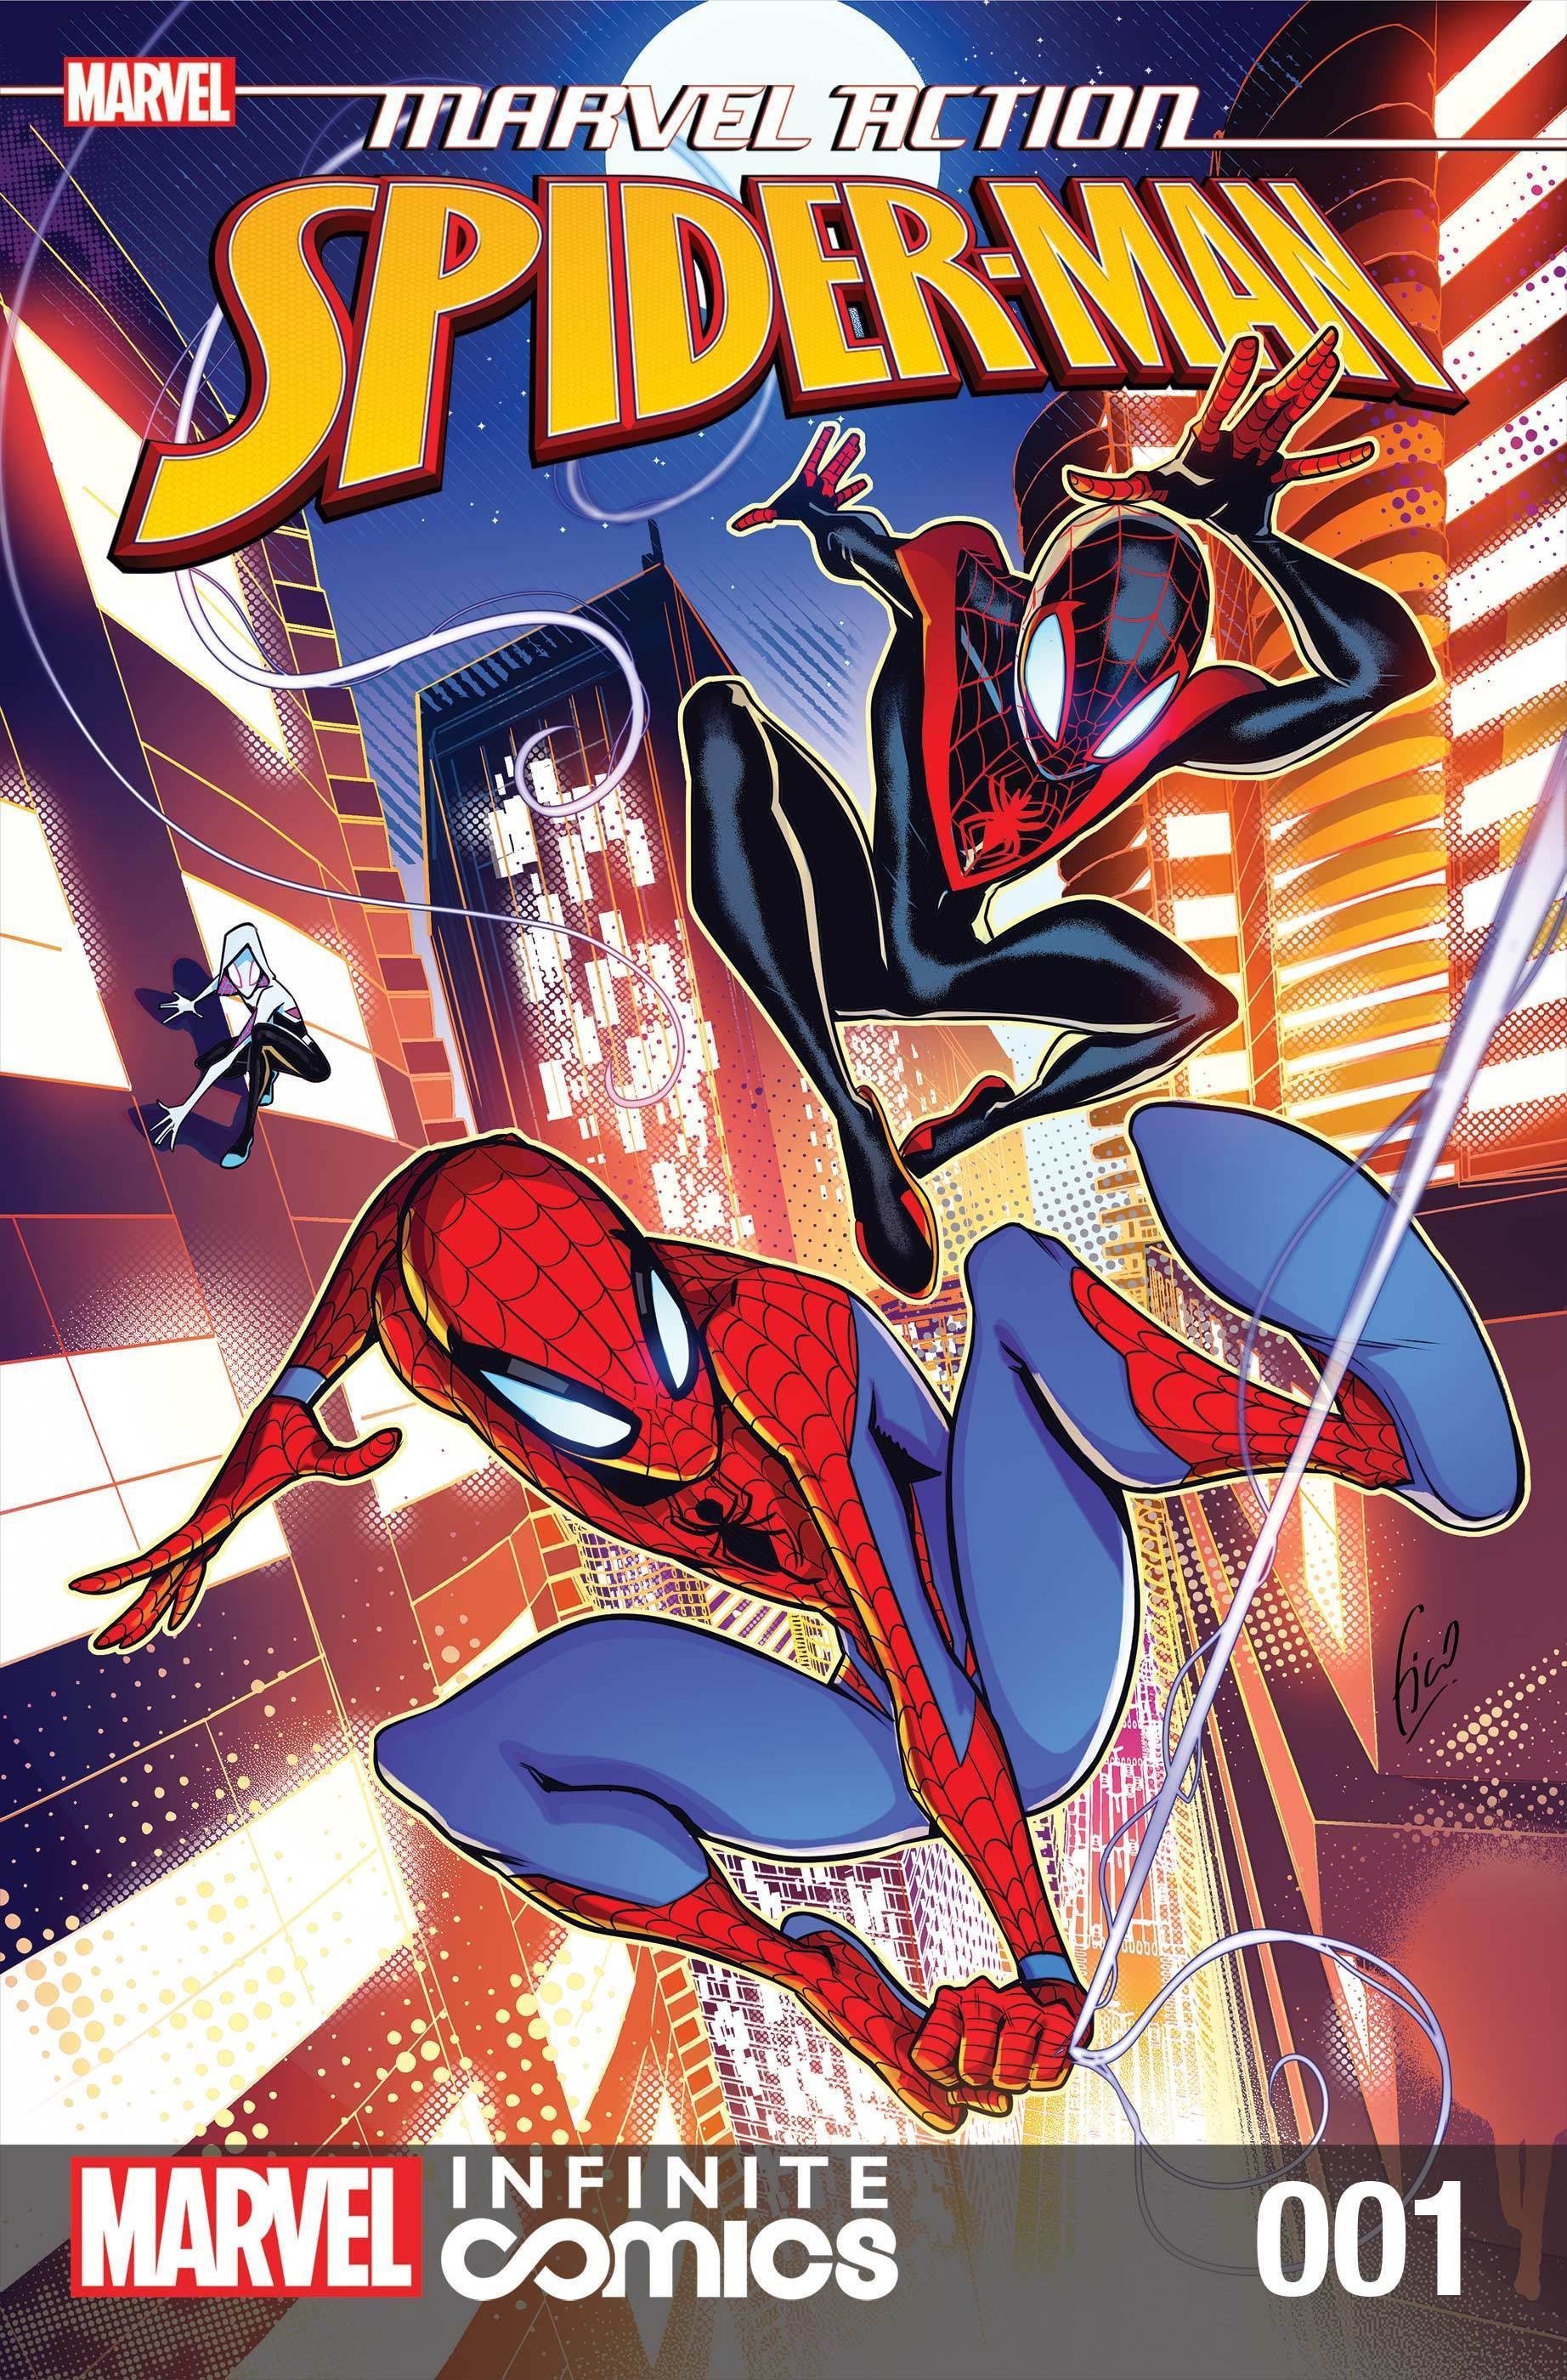 Marvel Action Spider-Man #01